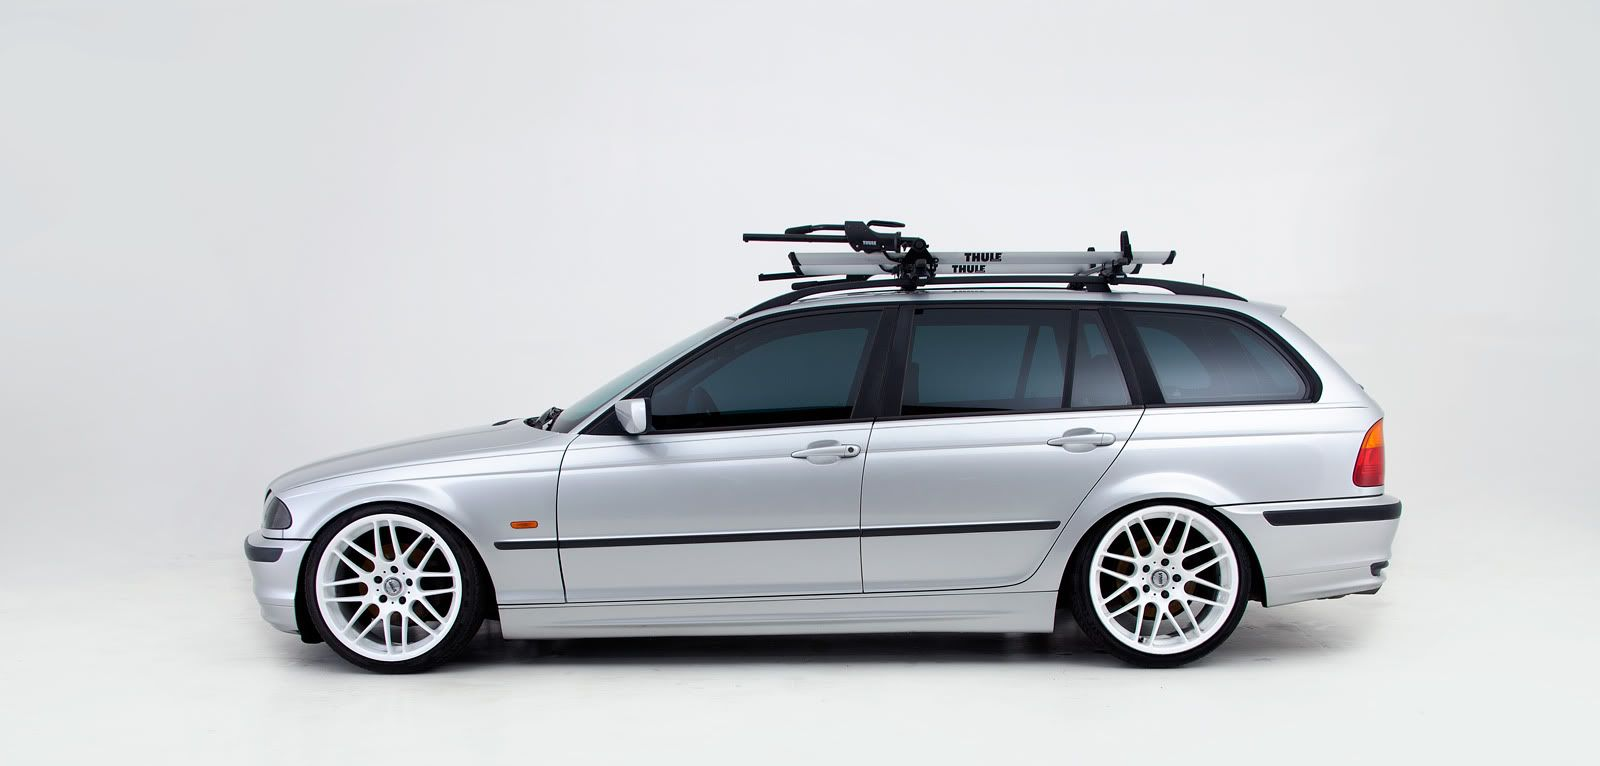 Pin by kyle snarr on four wheels Bmw wagon, Bmw touring